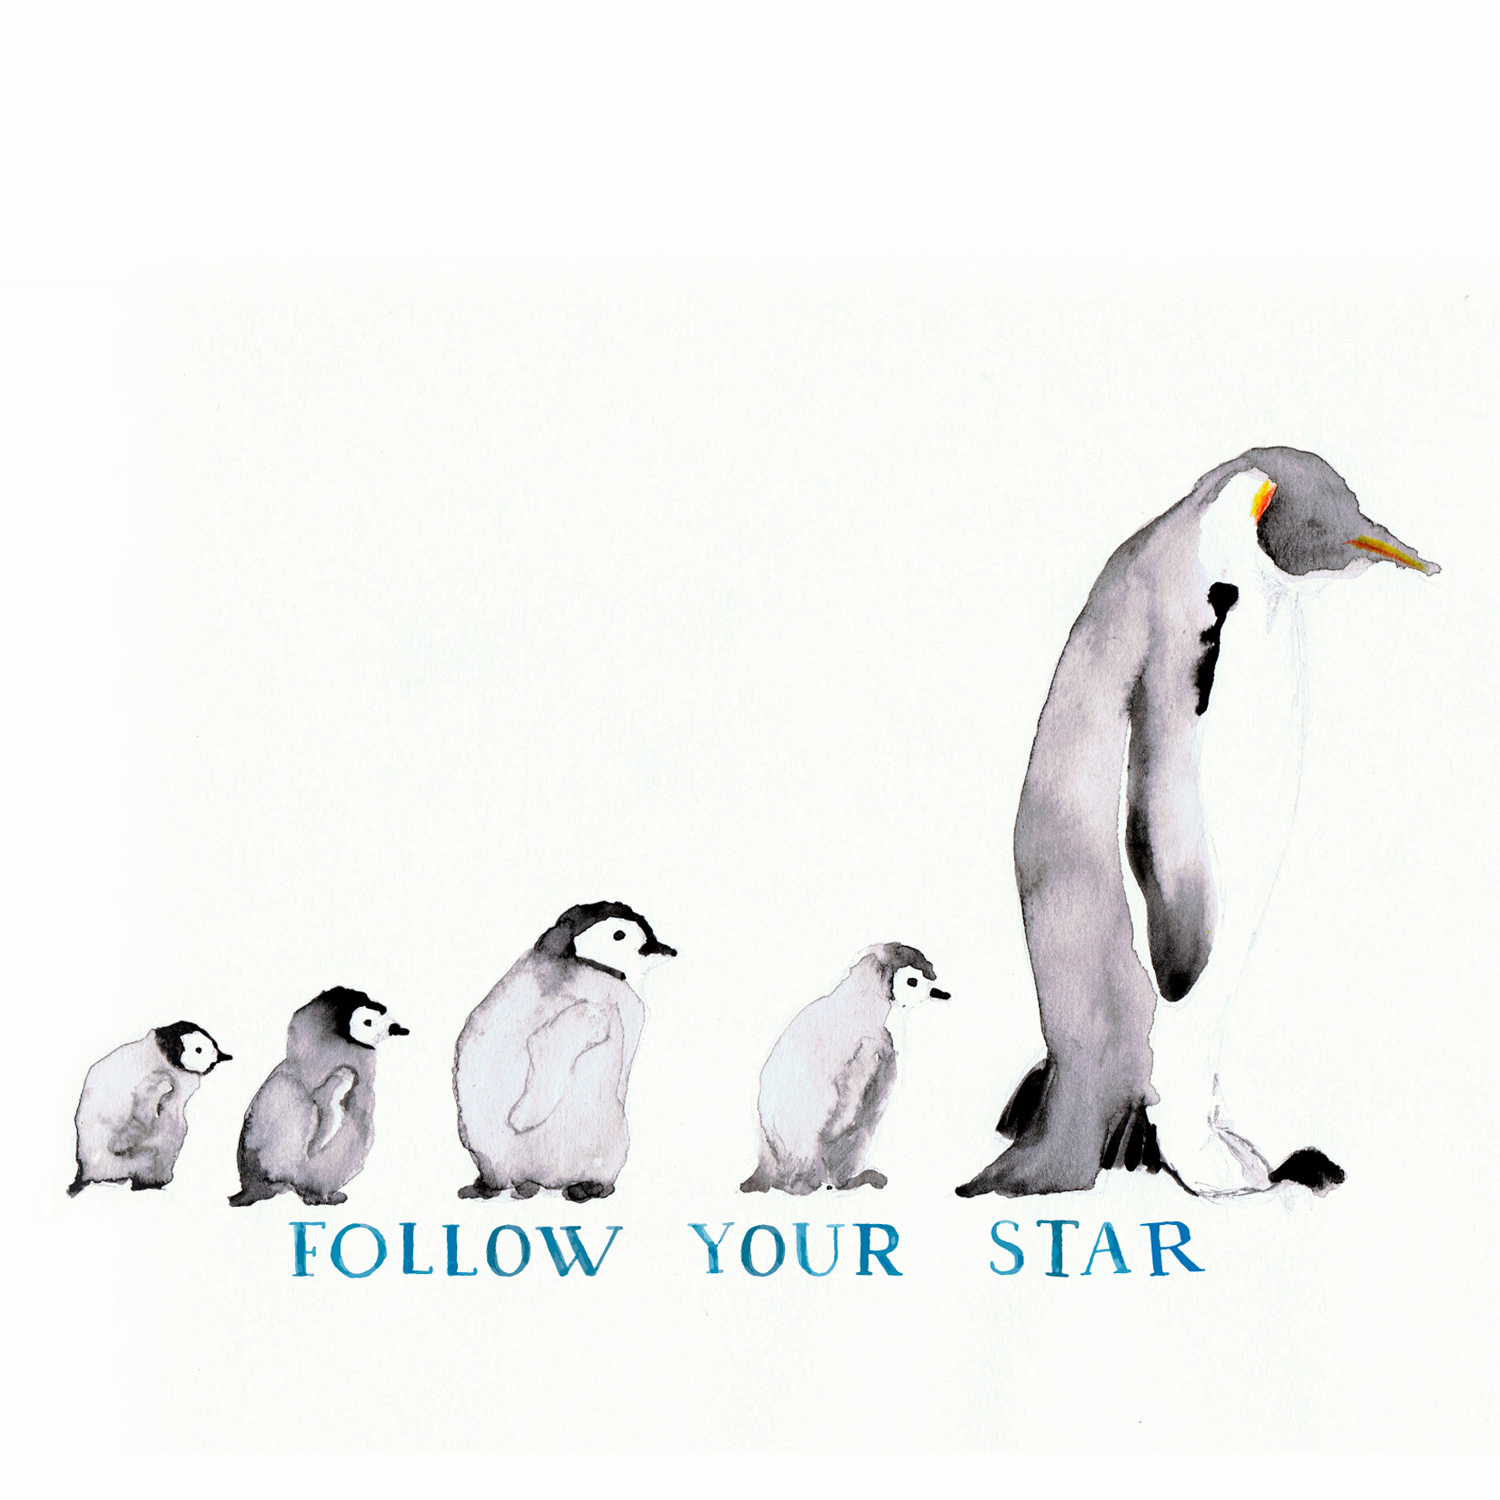 penguins_marching_follow_your_star.jpg